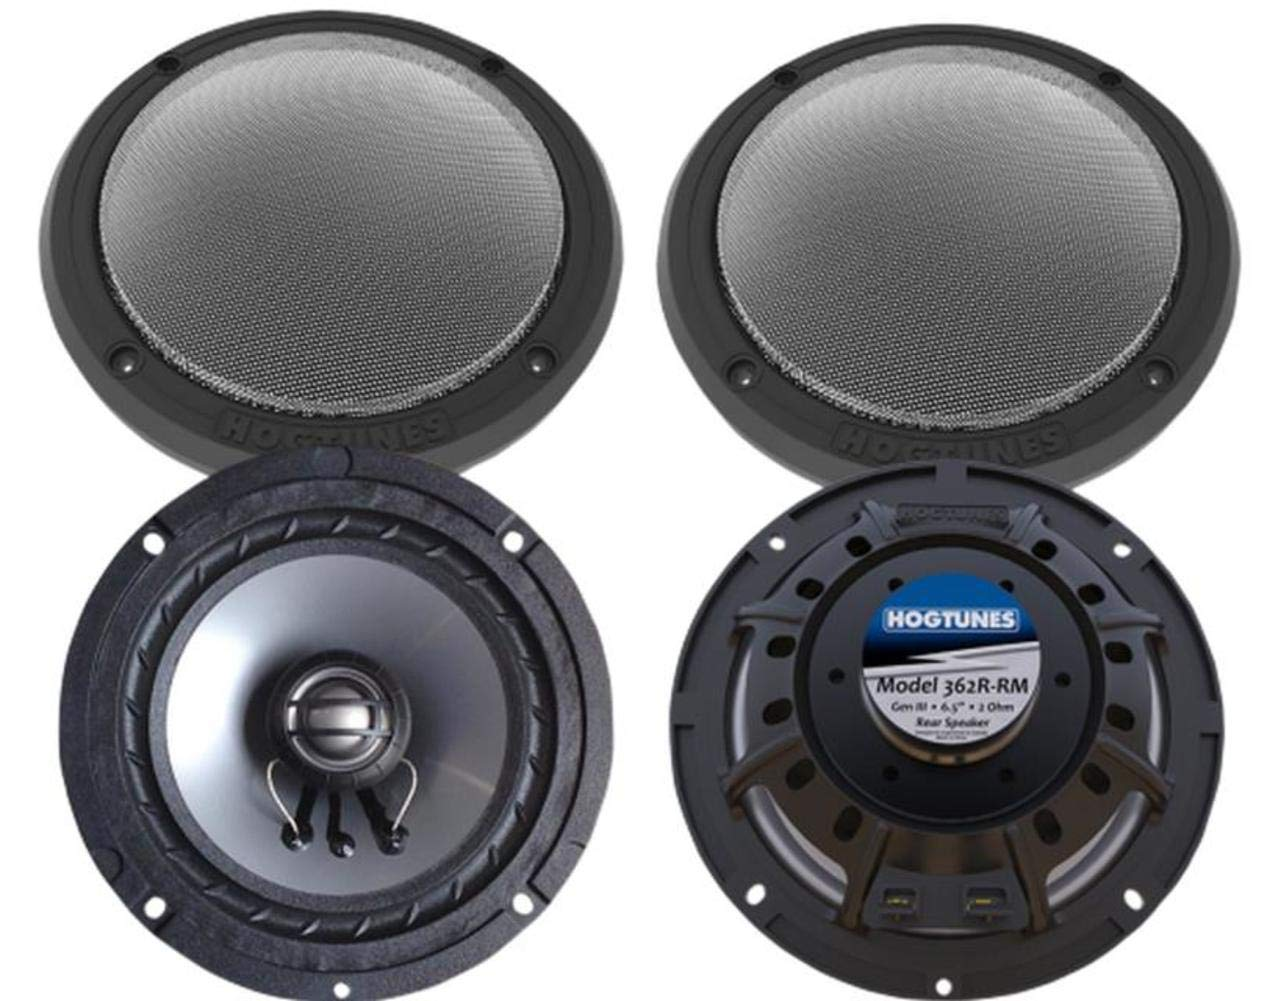 Hogtunes 362F-RM Front Speaker (Replacement Gen 3 6.5' for 2014-2016 Harley-Davidson Touring Models)